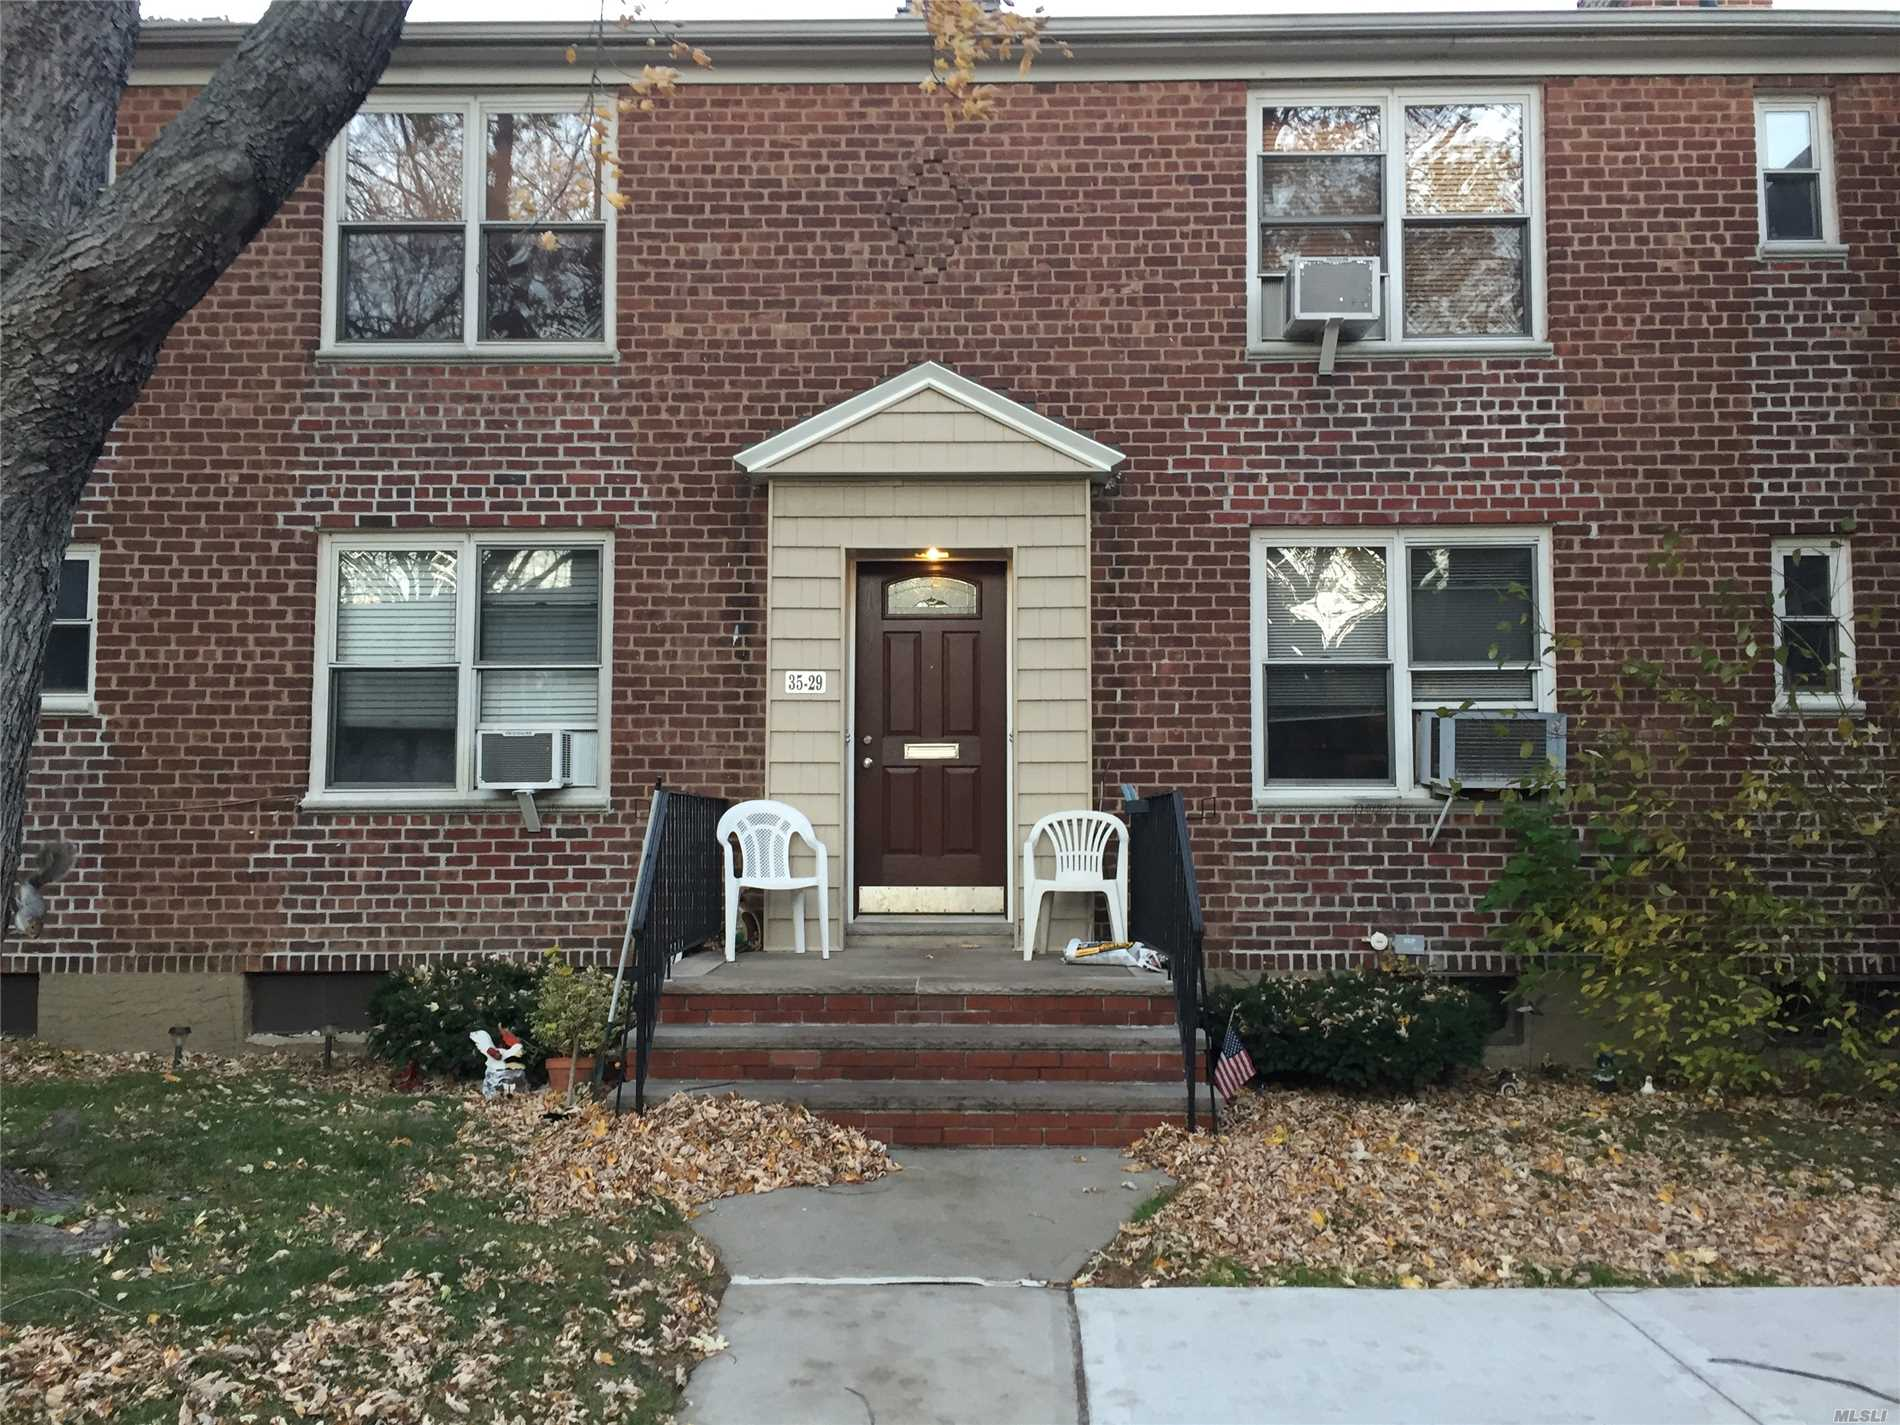 Baydale Tenants Co-Op. Spacious 1 Bedroom On 2nd Floor. Quiet Tree Lined Street. Close To Lirr, Bus, Shops, Hways. 100% Equity. Maintenance Increase March 1.